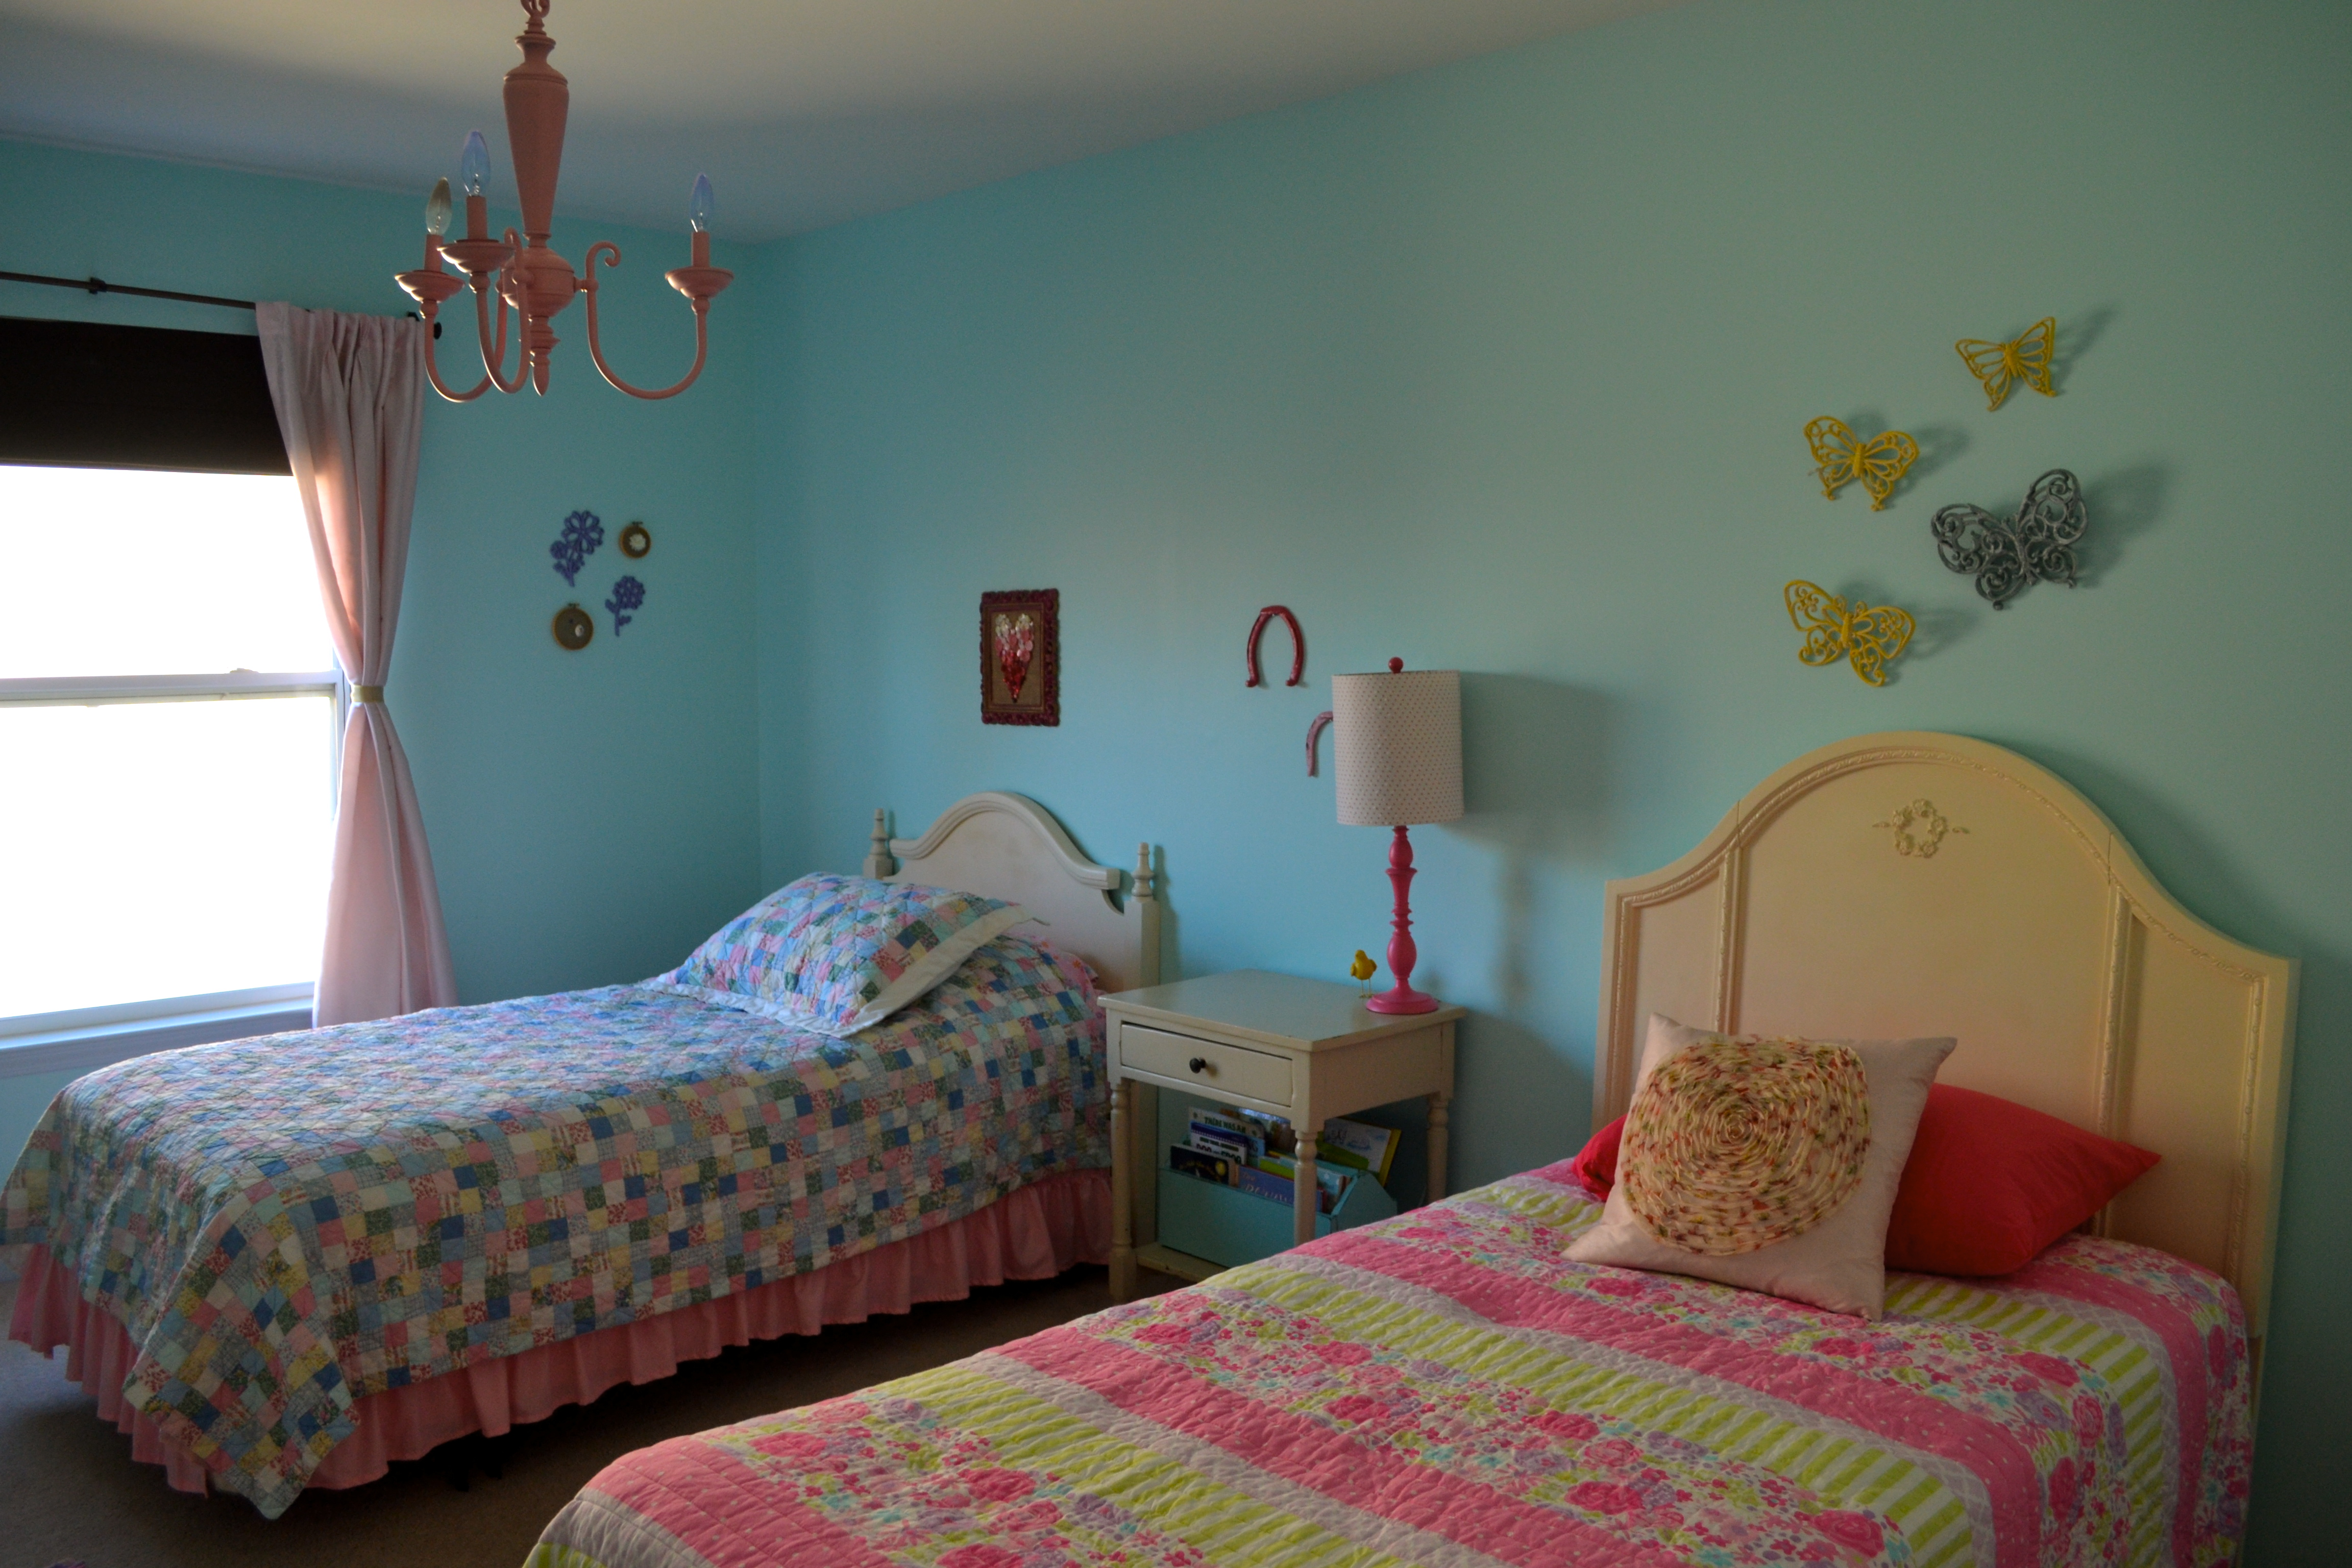 Repurposed Items My Daughters Room Makeover With Repurposed Items Mrs Webers